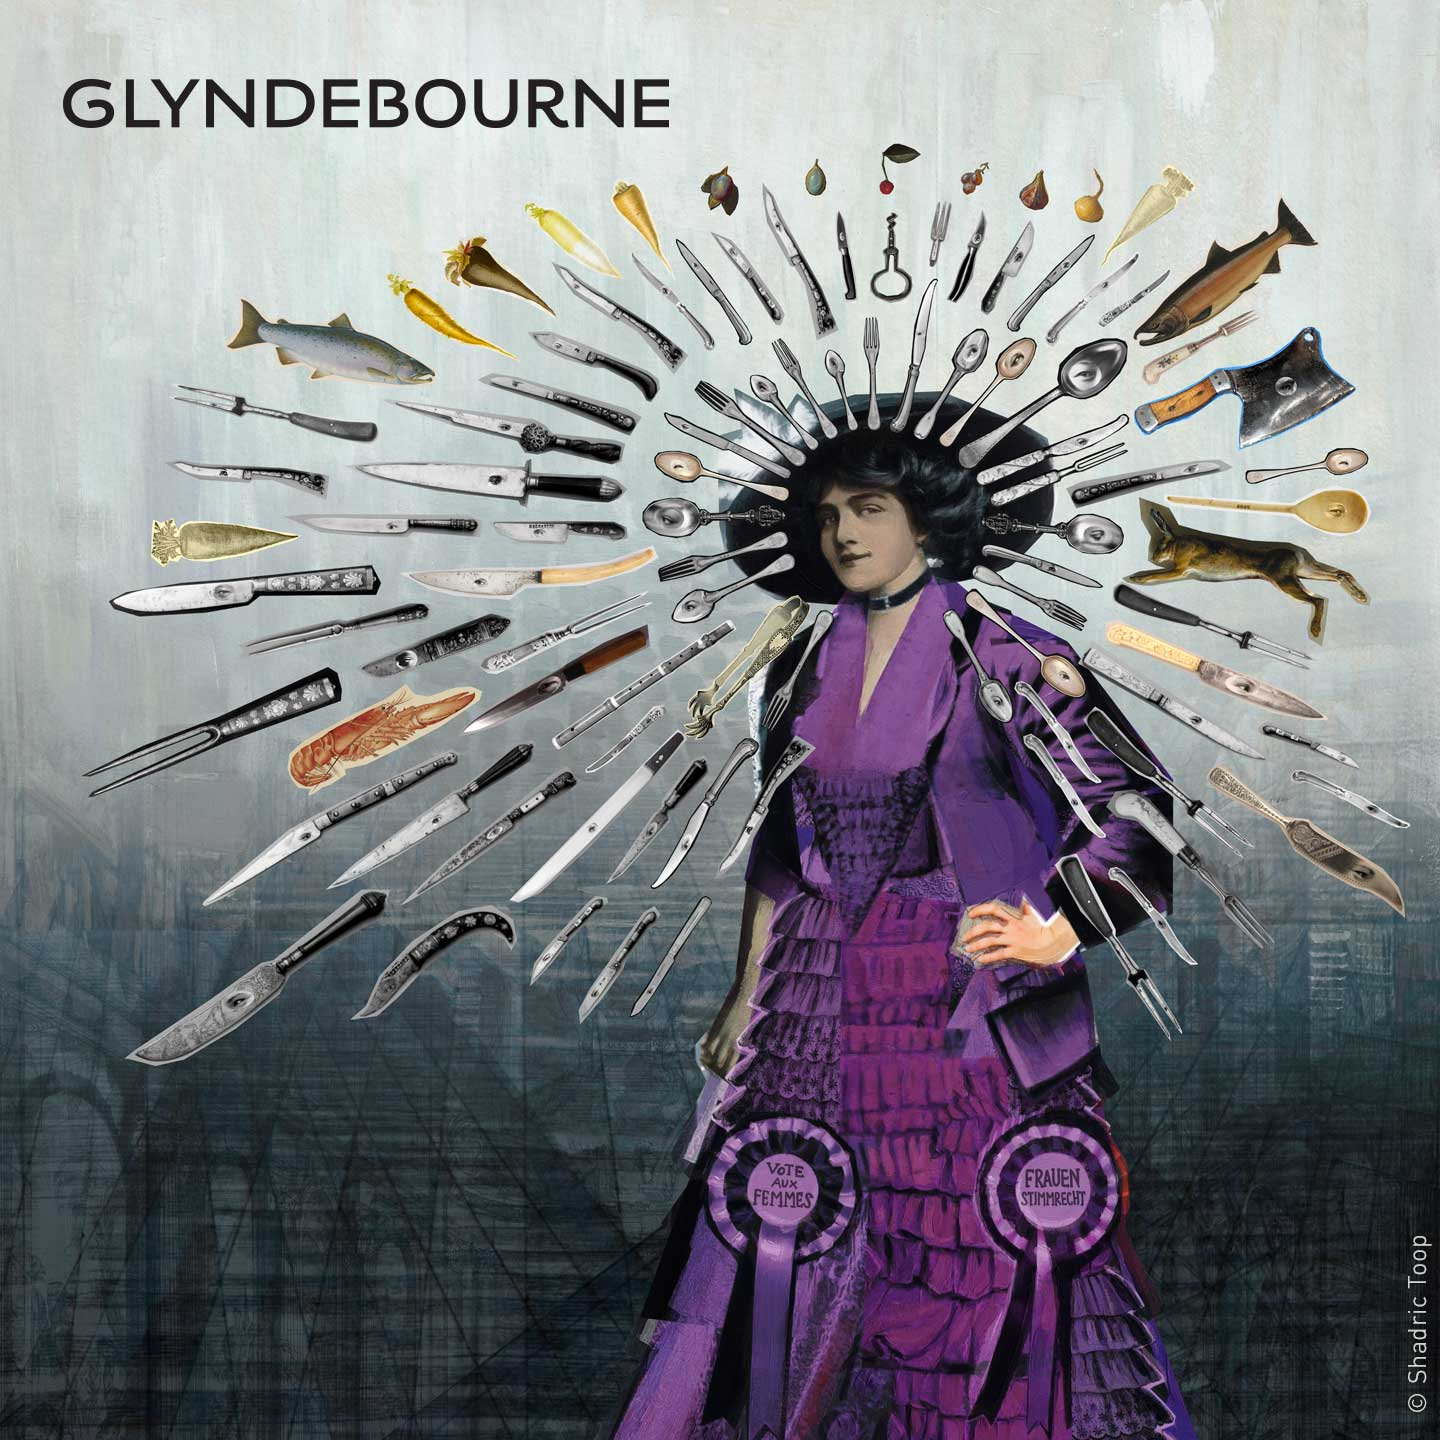 Glyndebourne Festival 2019 Die Zauberflote illustration showing the Queen of the Night character with surreal painted collage of knives spoons and food from the hotel kitchen